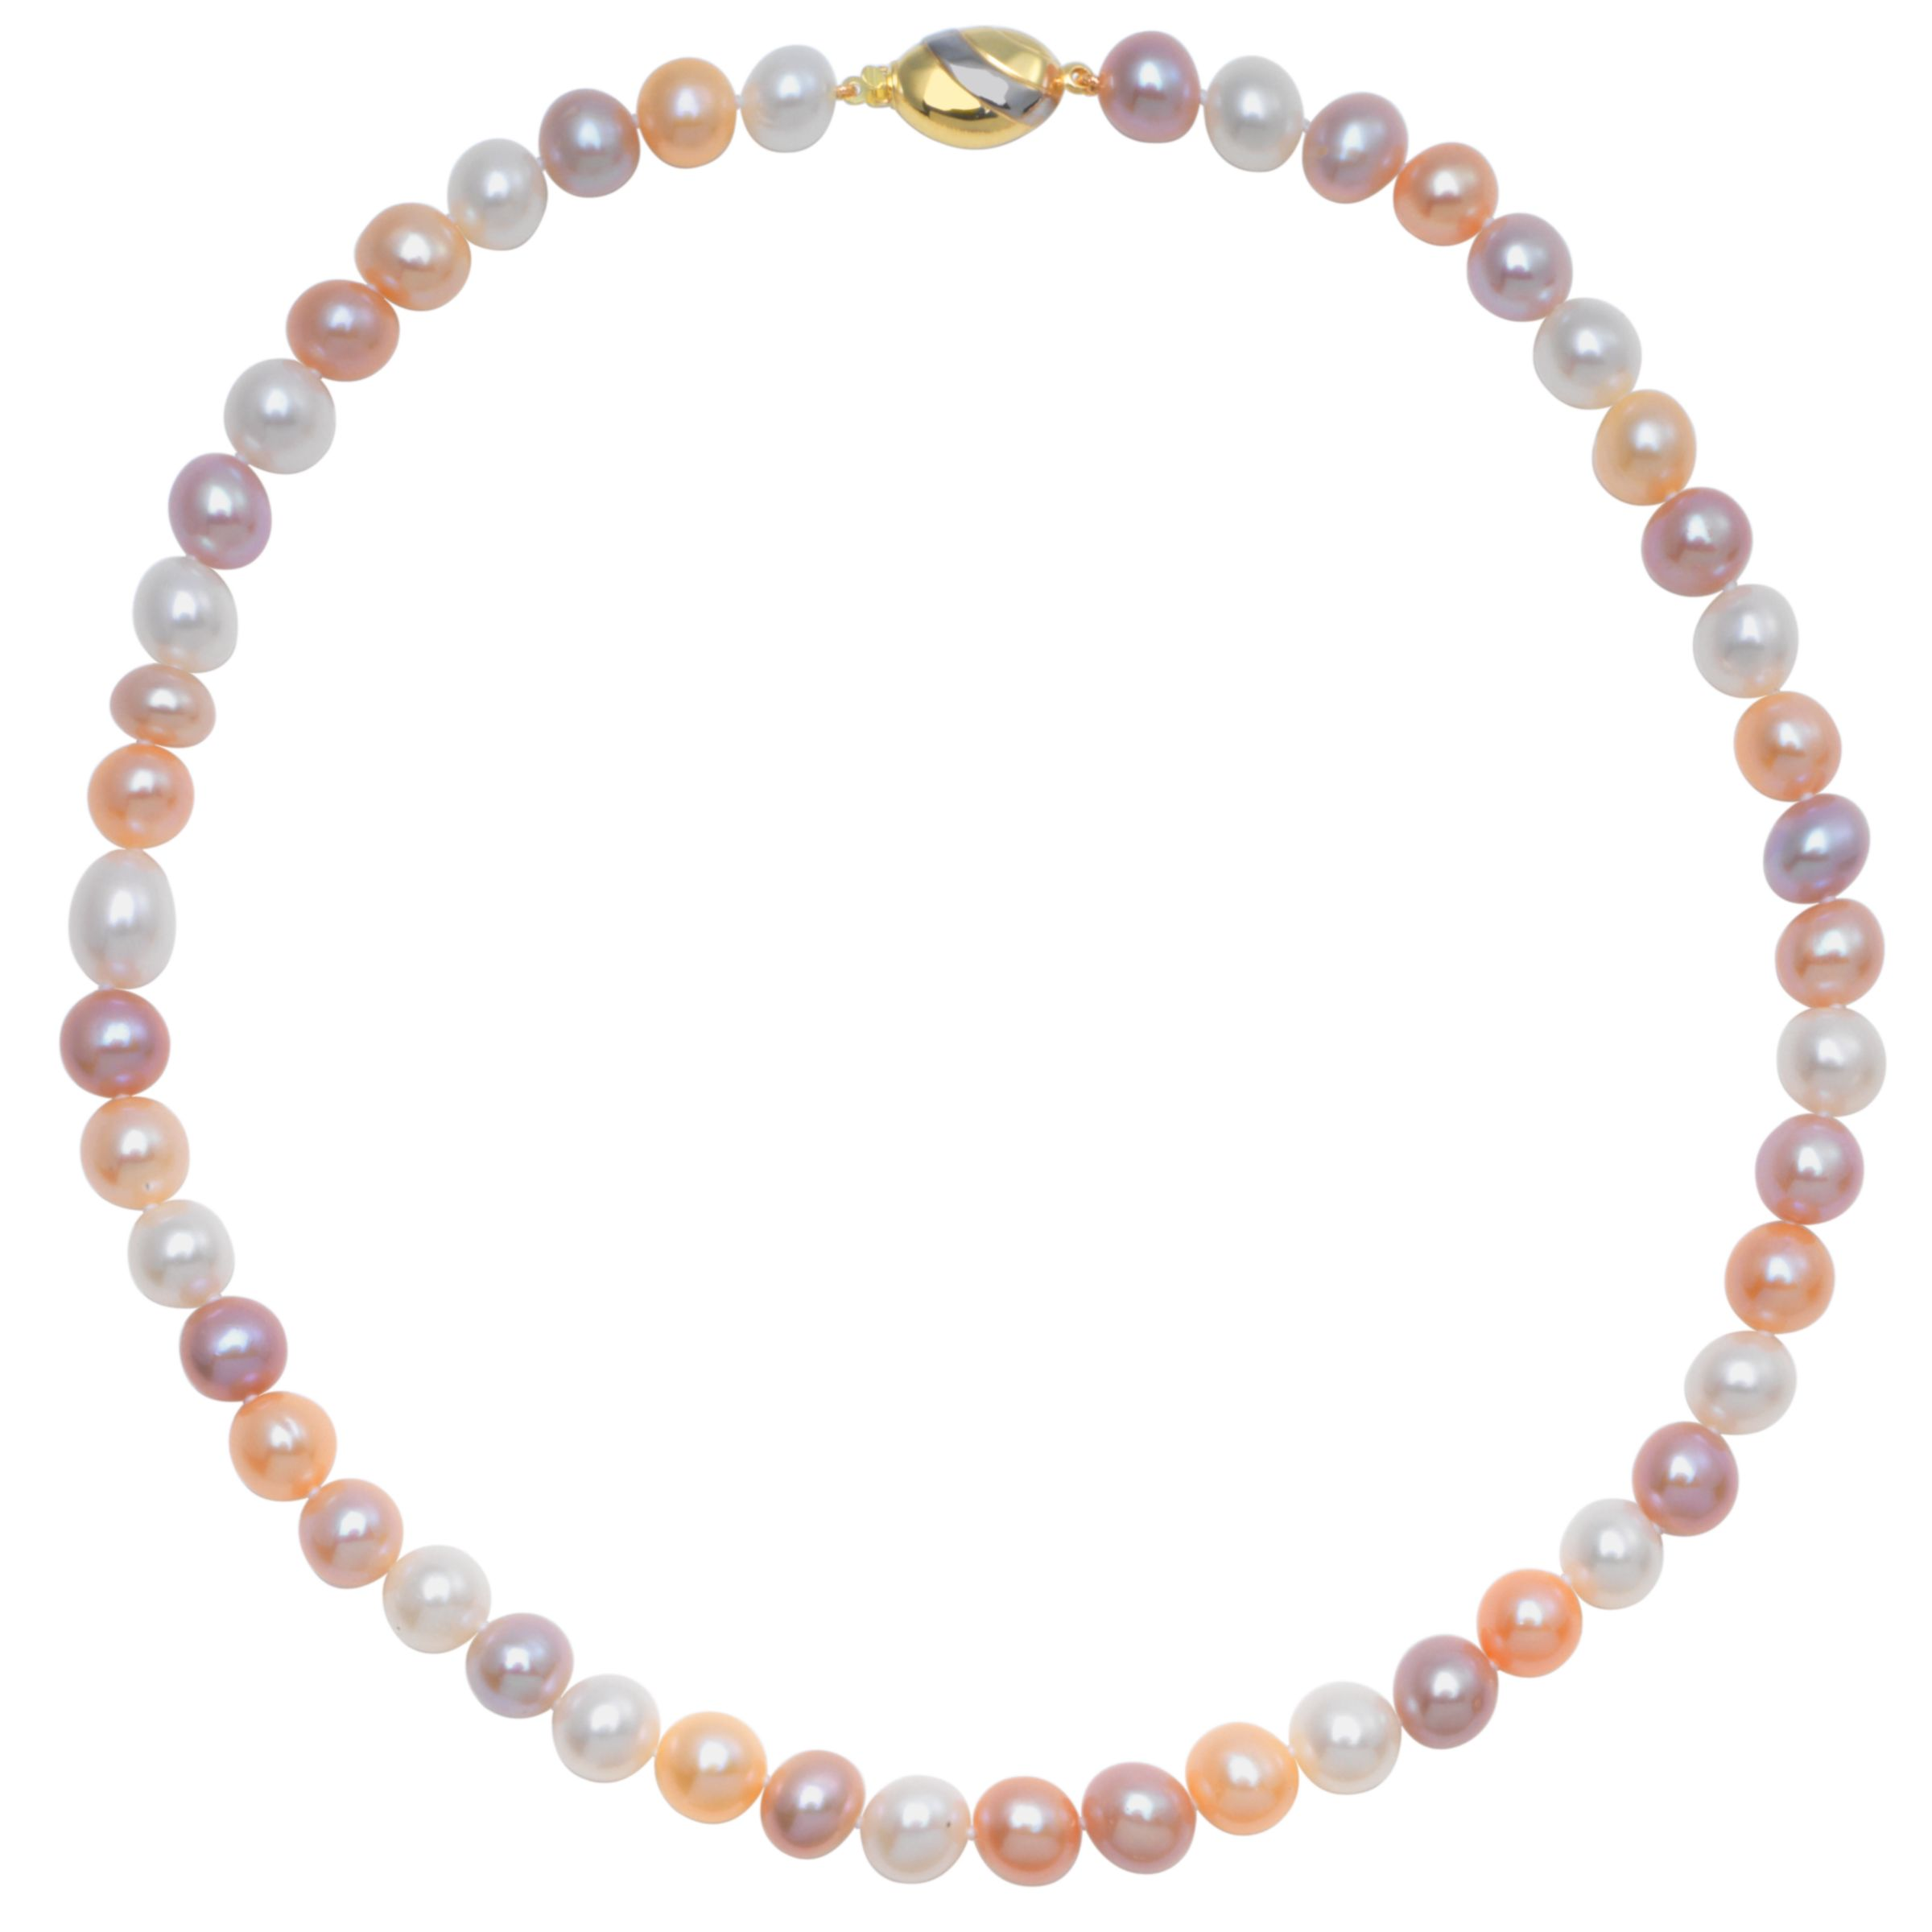 3 Tone Freshwater Pearls Knotted 18